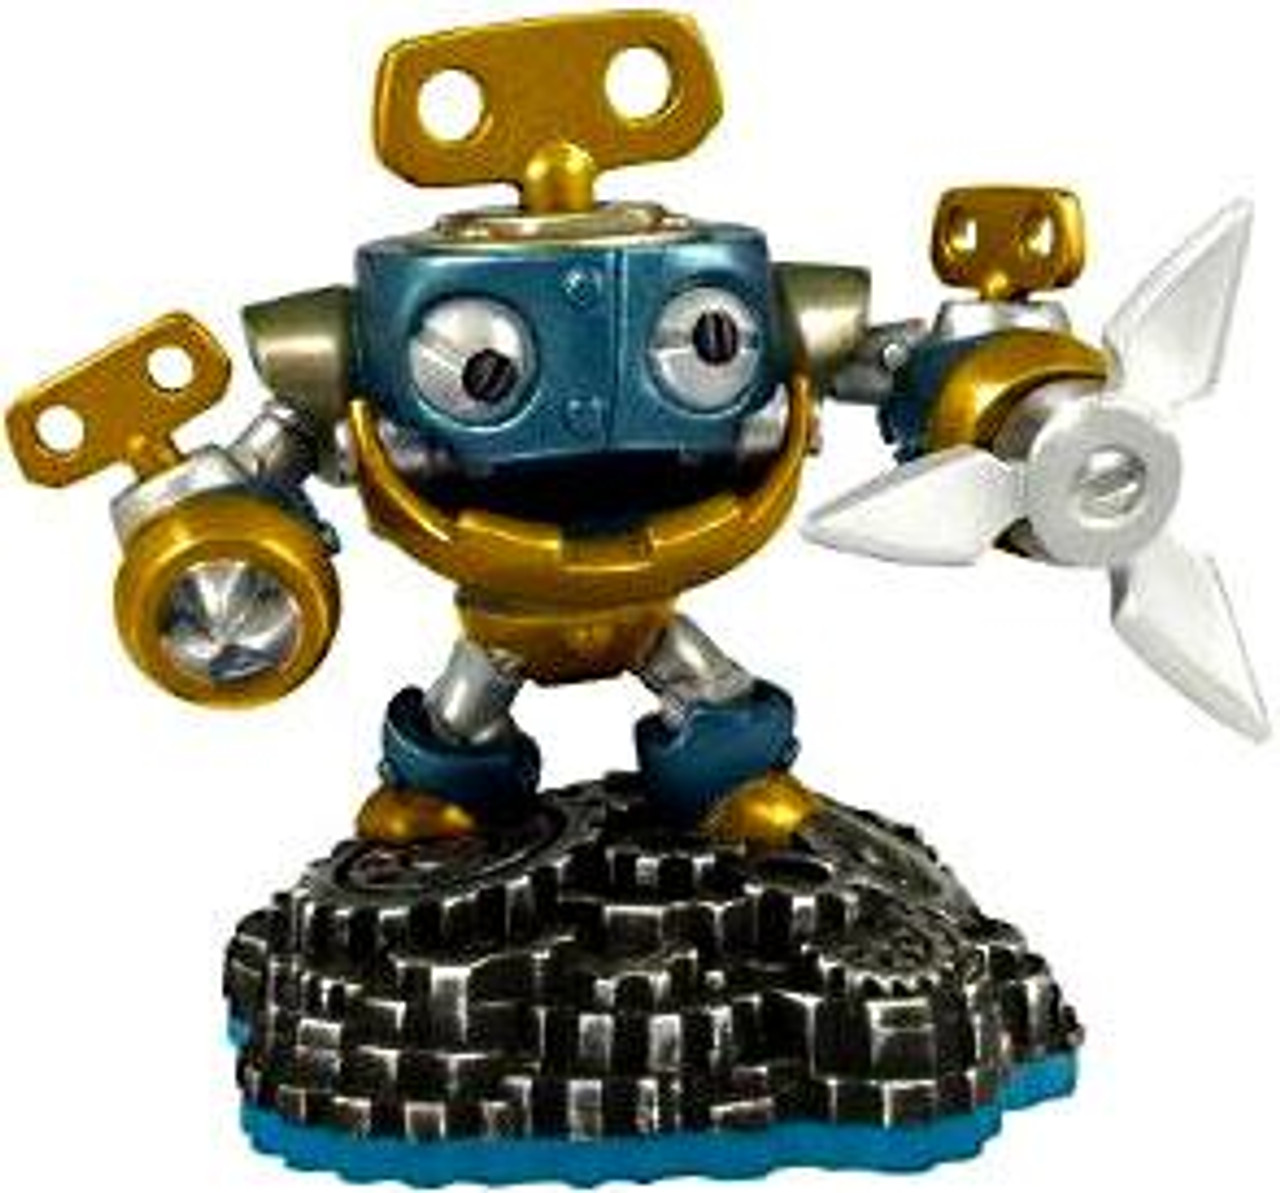 Skylanders Swap Force Loose Wind-Up Figure [Loose]